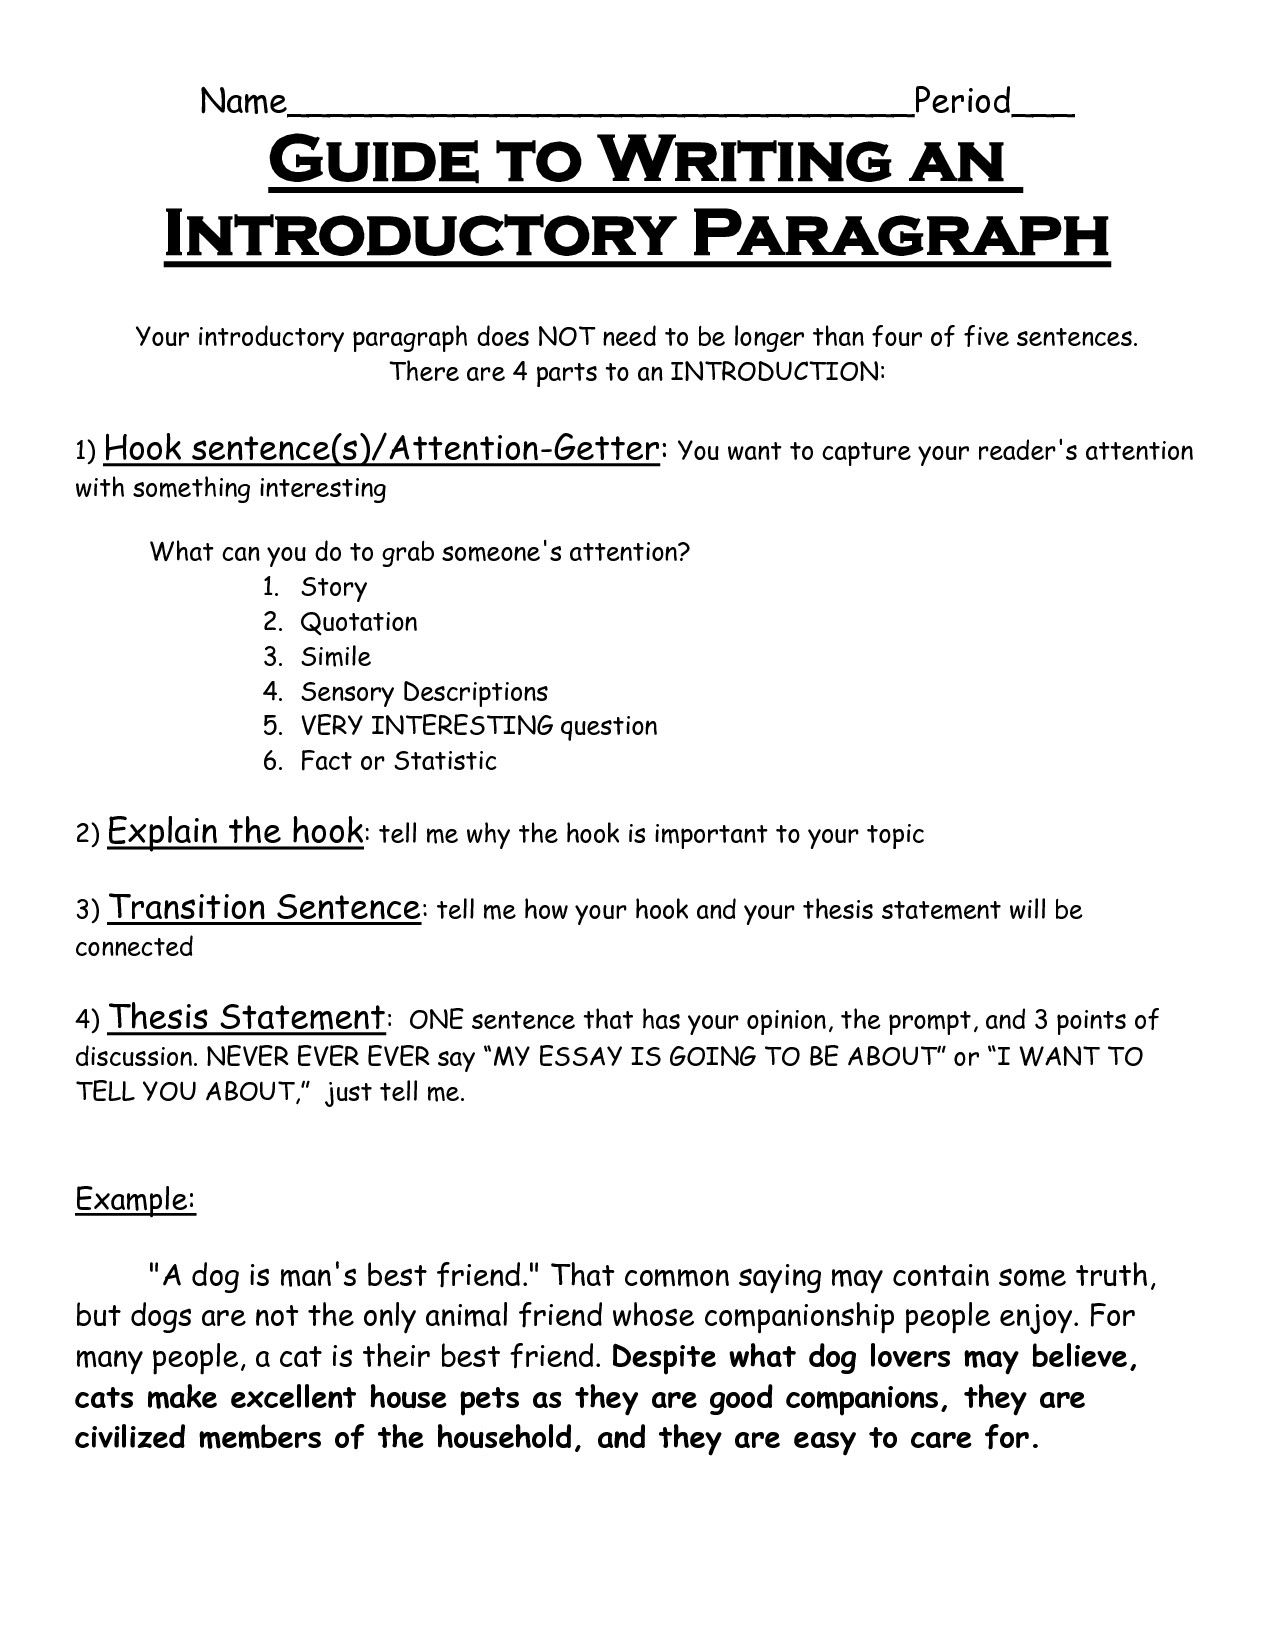 Pin By Kyra Heinisch On In The Name Of Education Essay Writing Skill Introductory Paragraph Lessons Dr Seus